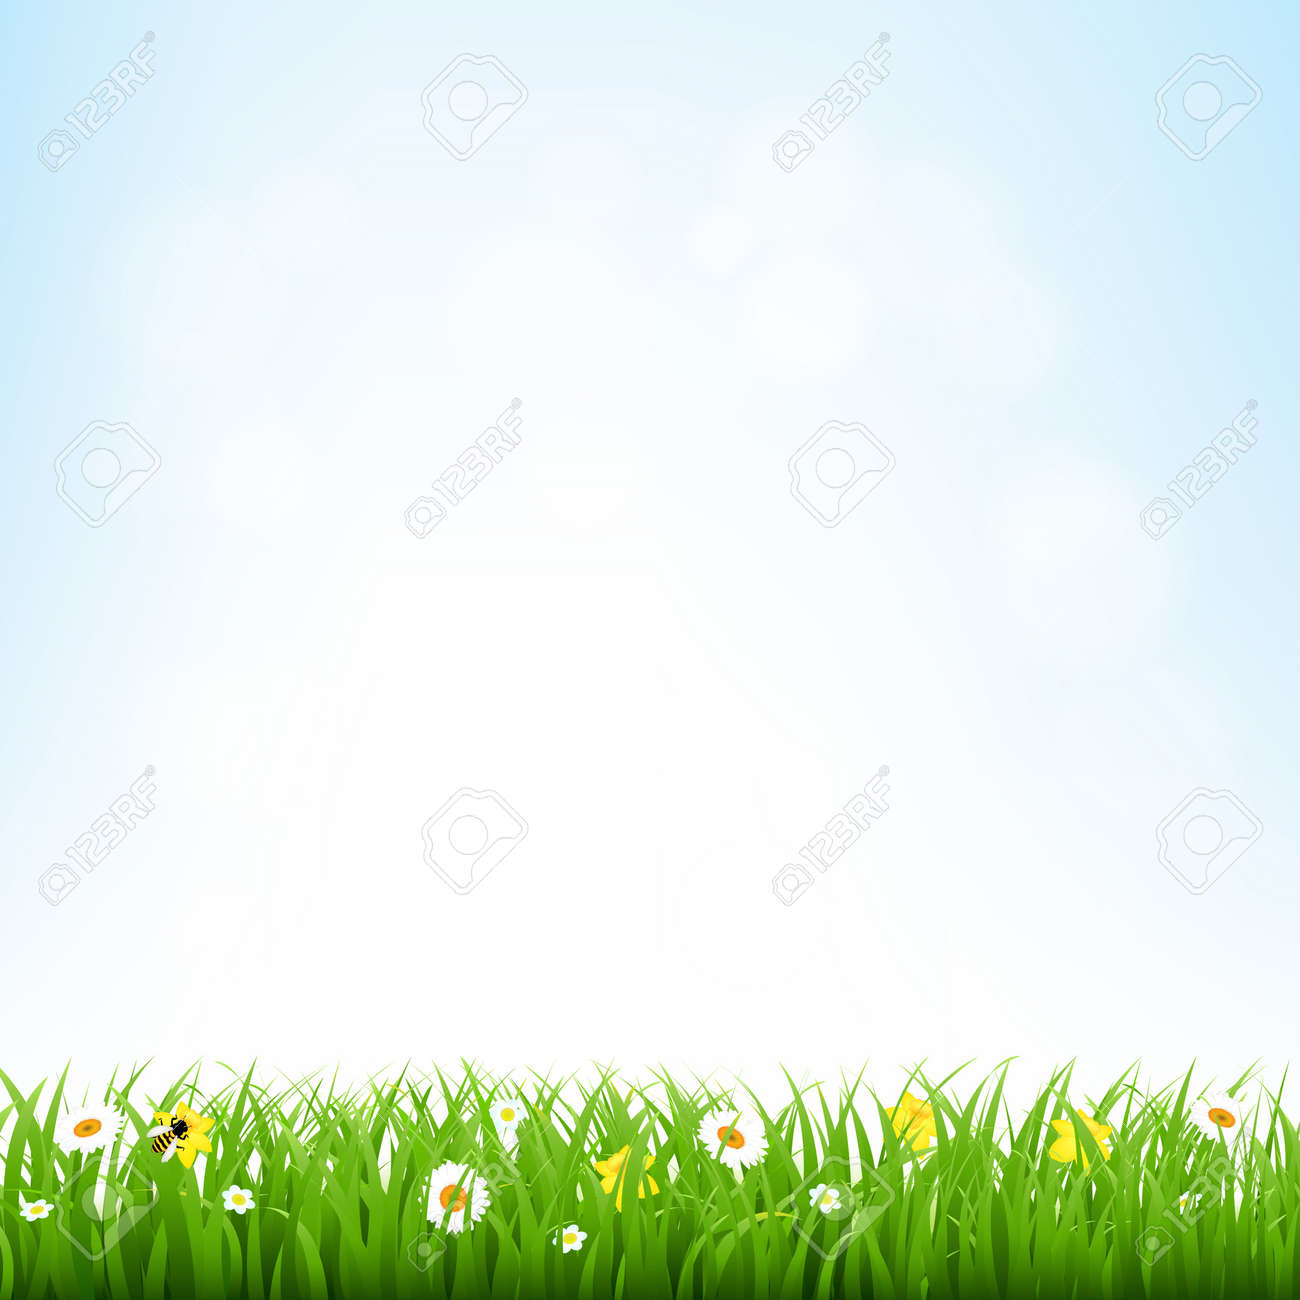 Nature Background With Grass Border With Gradient Mesh, Vector Illustration - 36978520